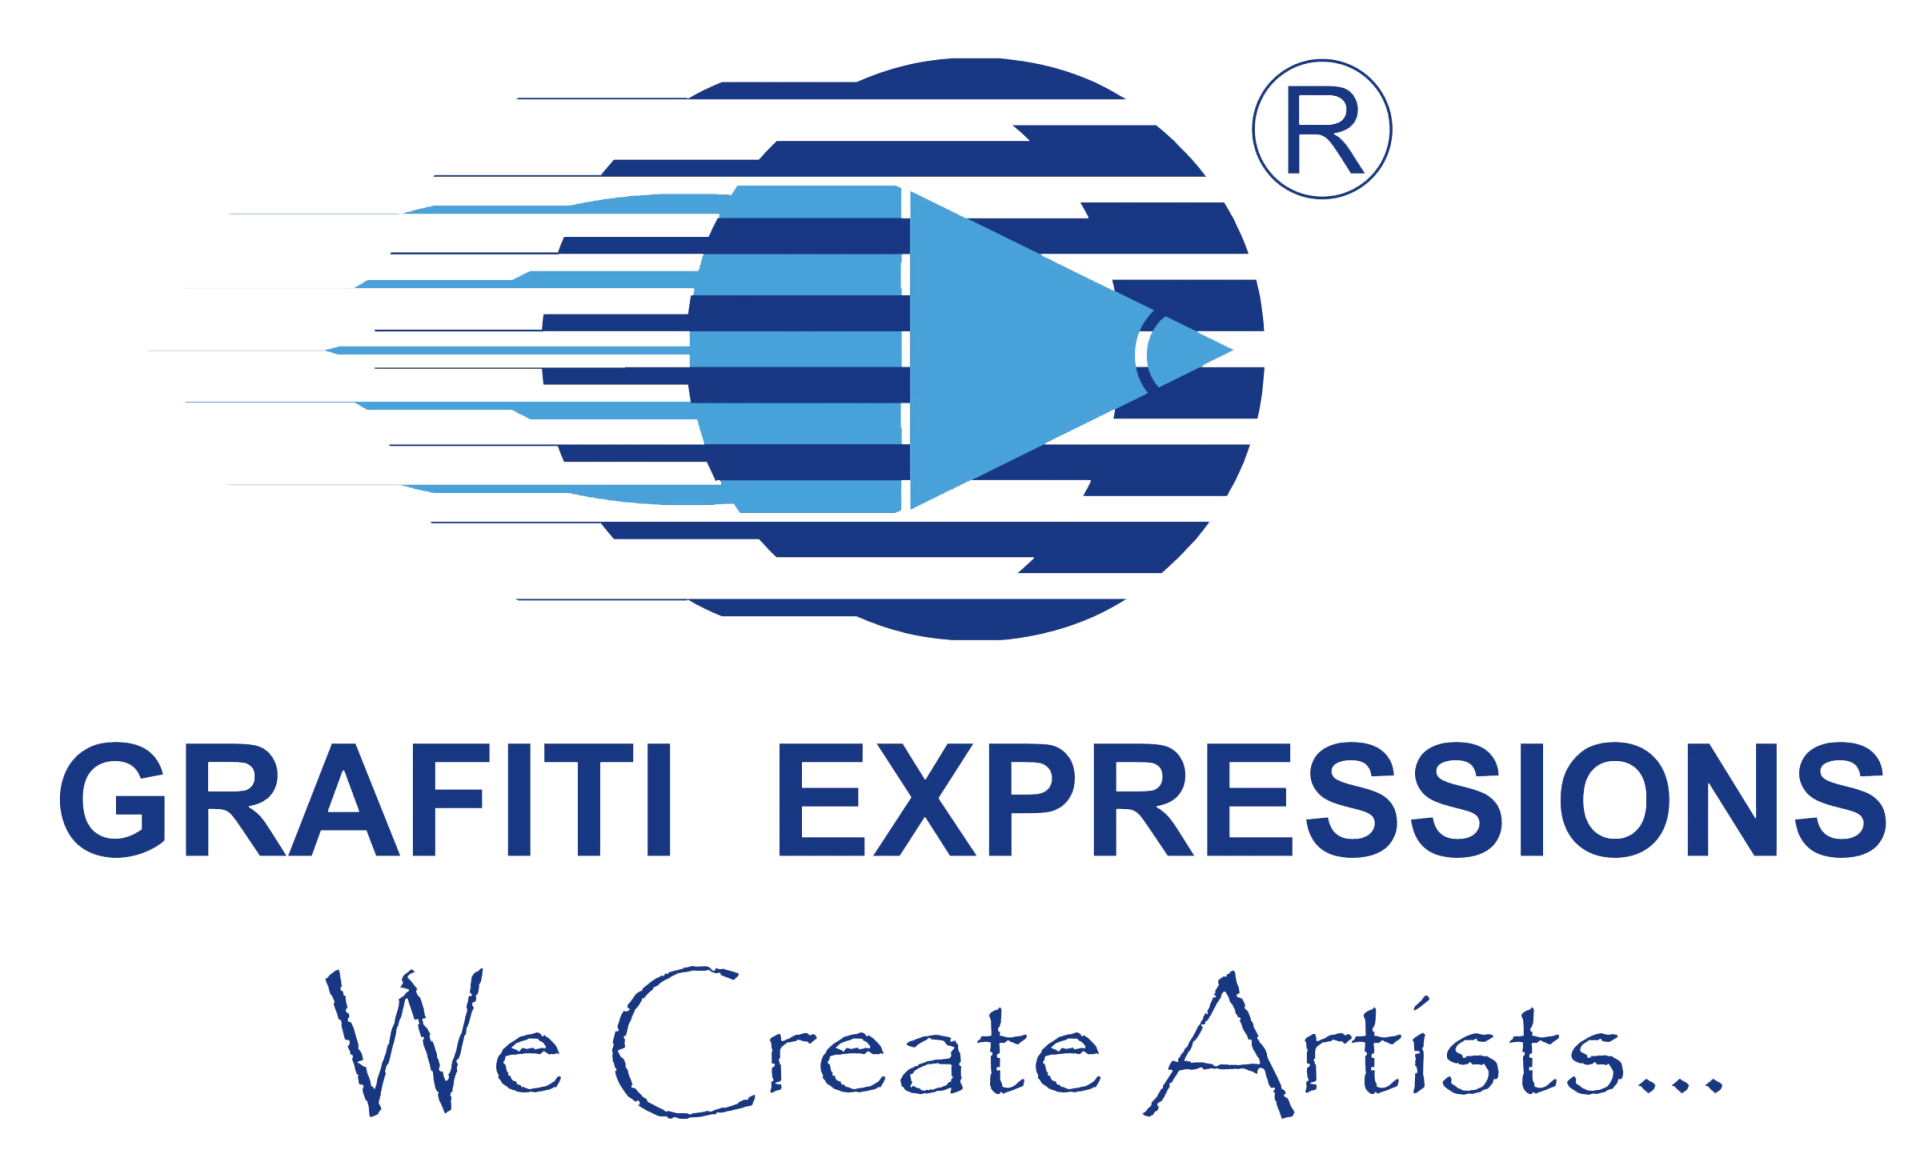 Grafiti Expressions Grafiti Expressions trans order digital marketing services in pune Order Digital Marketing Services in Pune trans